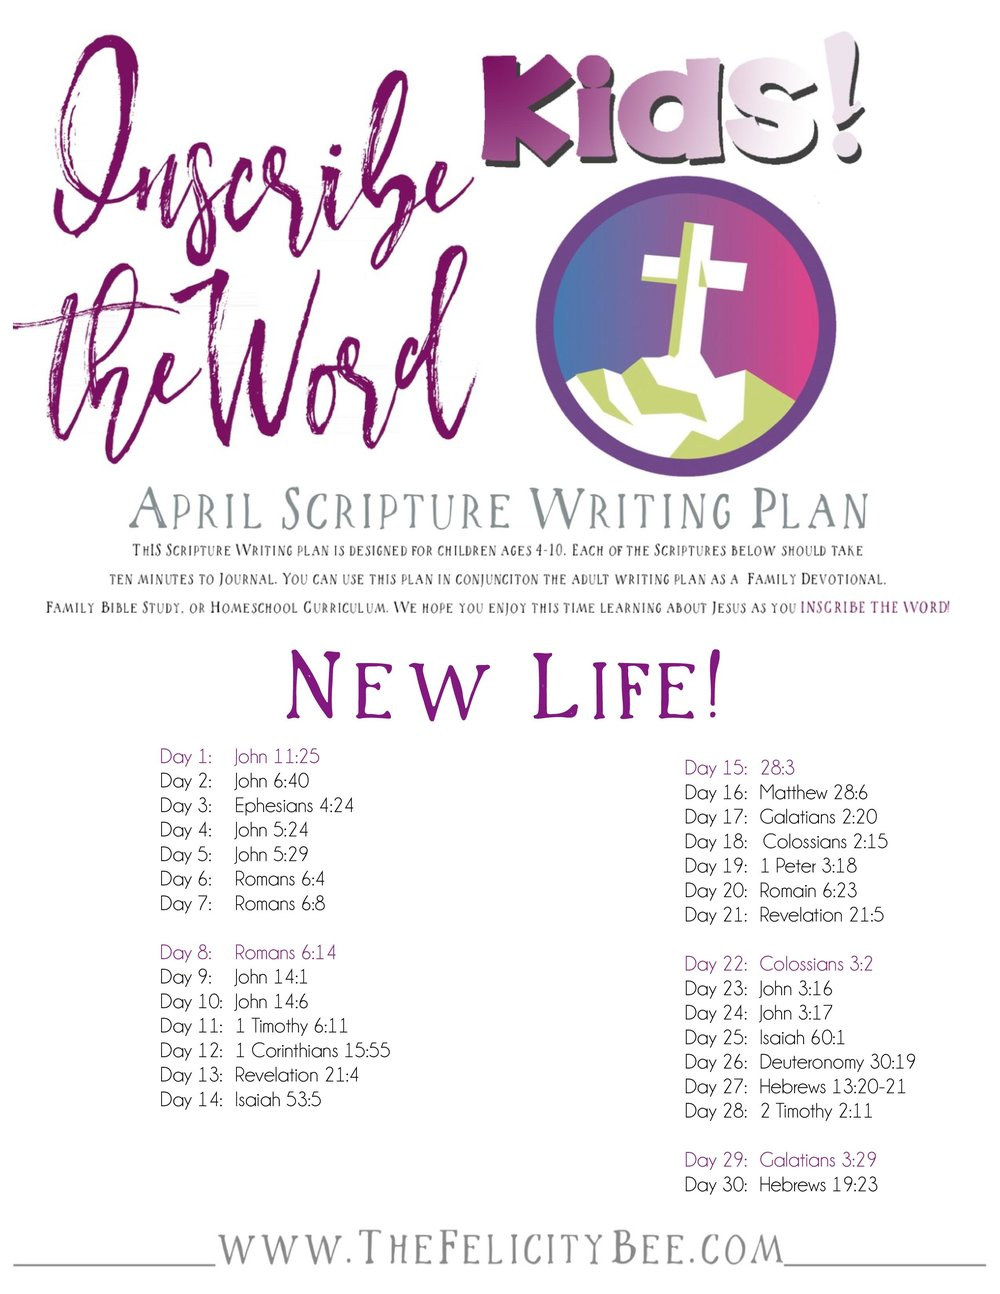 To download your KIDS Inscribe the Word Plan, CLICK HERE.